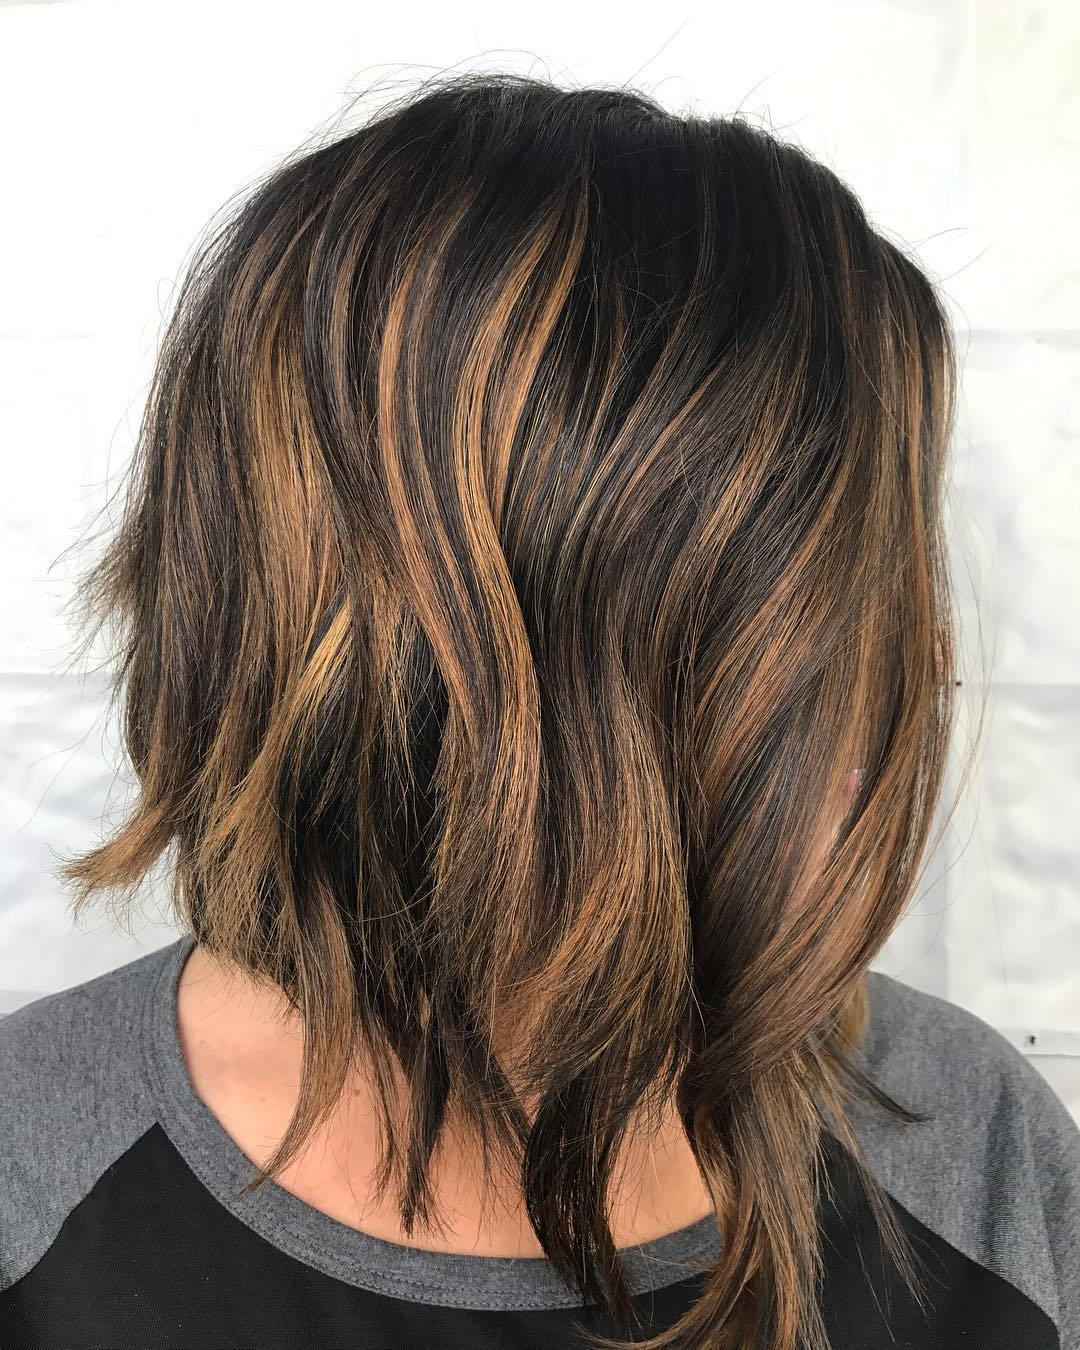 Widely Used Shag Haircuts With Disconnected Razored Layers Intended For 50 Hairstyles For Thick Wavy Hair You Will Adore – Hair (View 8 of 20)